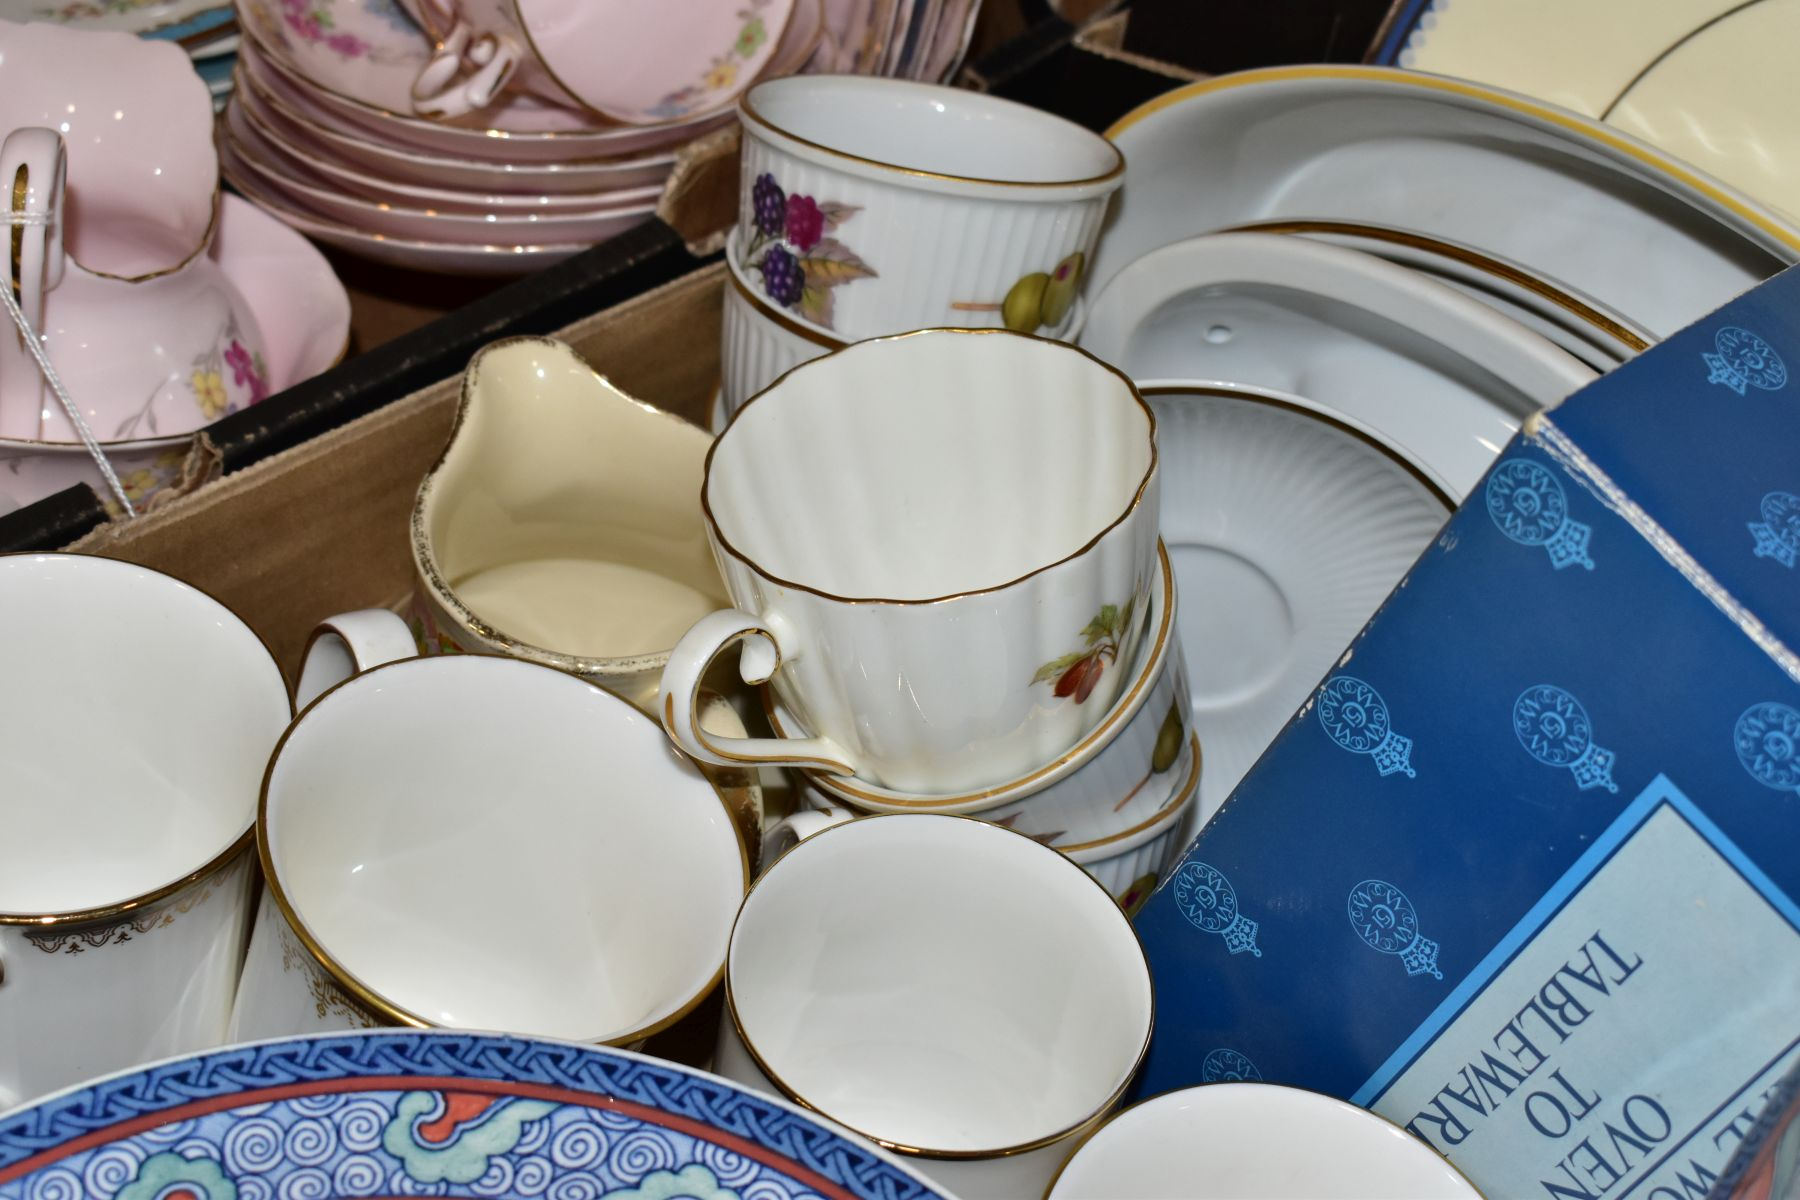 TWO BOXES OF WEDGWOOD ROYAL WORCESTER, ROYAL ALBERT AND TUSCAN CHINA TEA AND DINNER WARES, including - Image 5 of 10